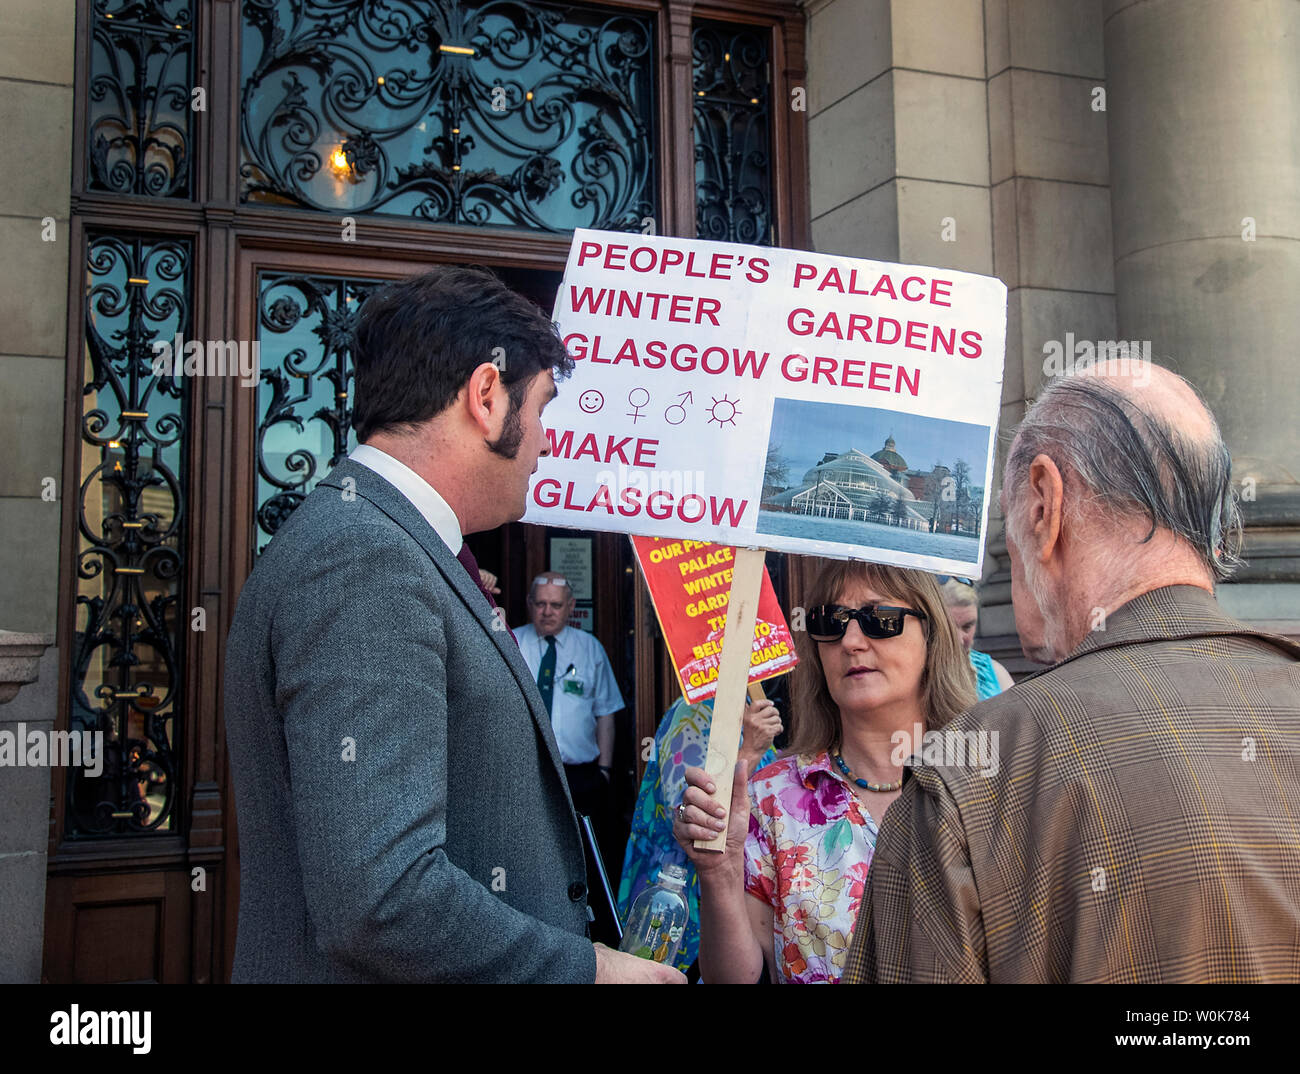 Glasgow, Scotland, UK. 27th June 2019: People protesting to save the Peoples Palace and the Winter Gardens. - Stock Image